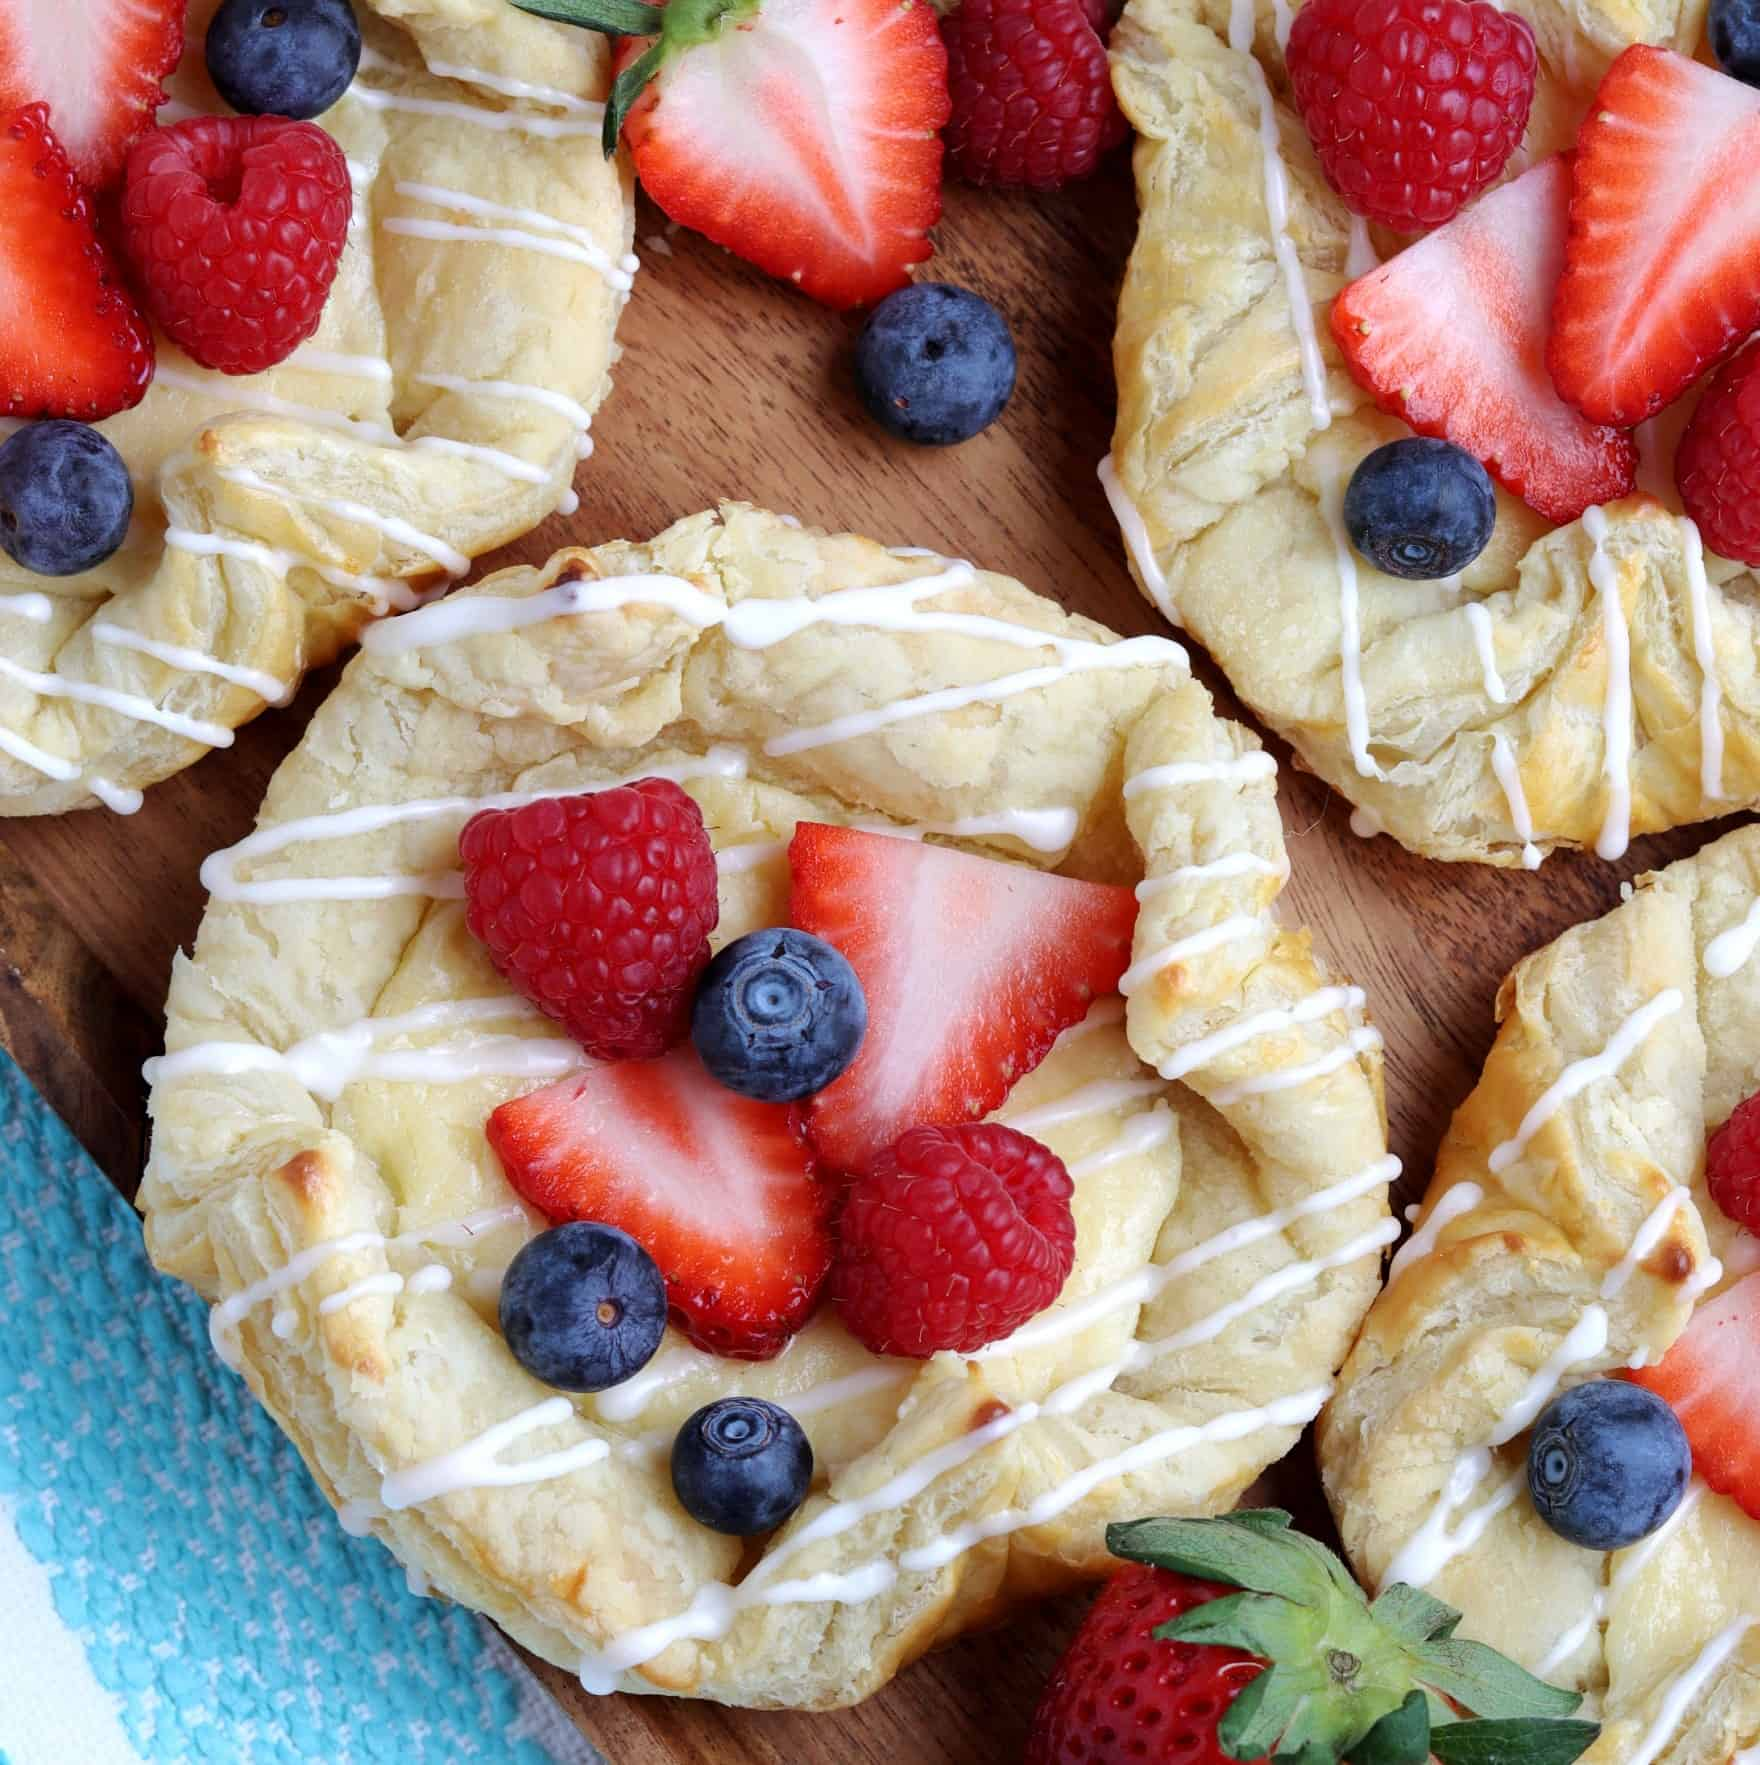 Centered Vegan Cream Cheese Danish drizzled with icing and berries.